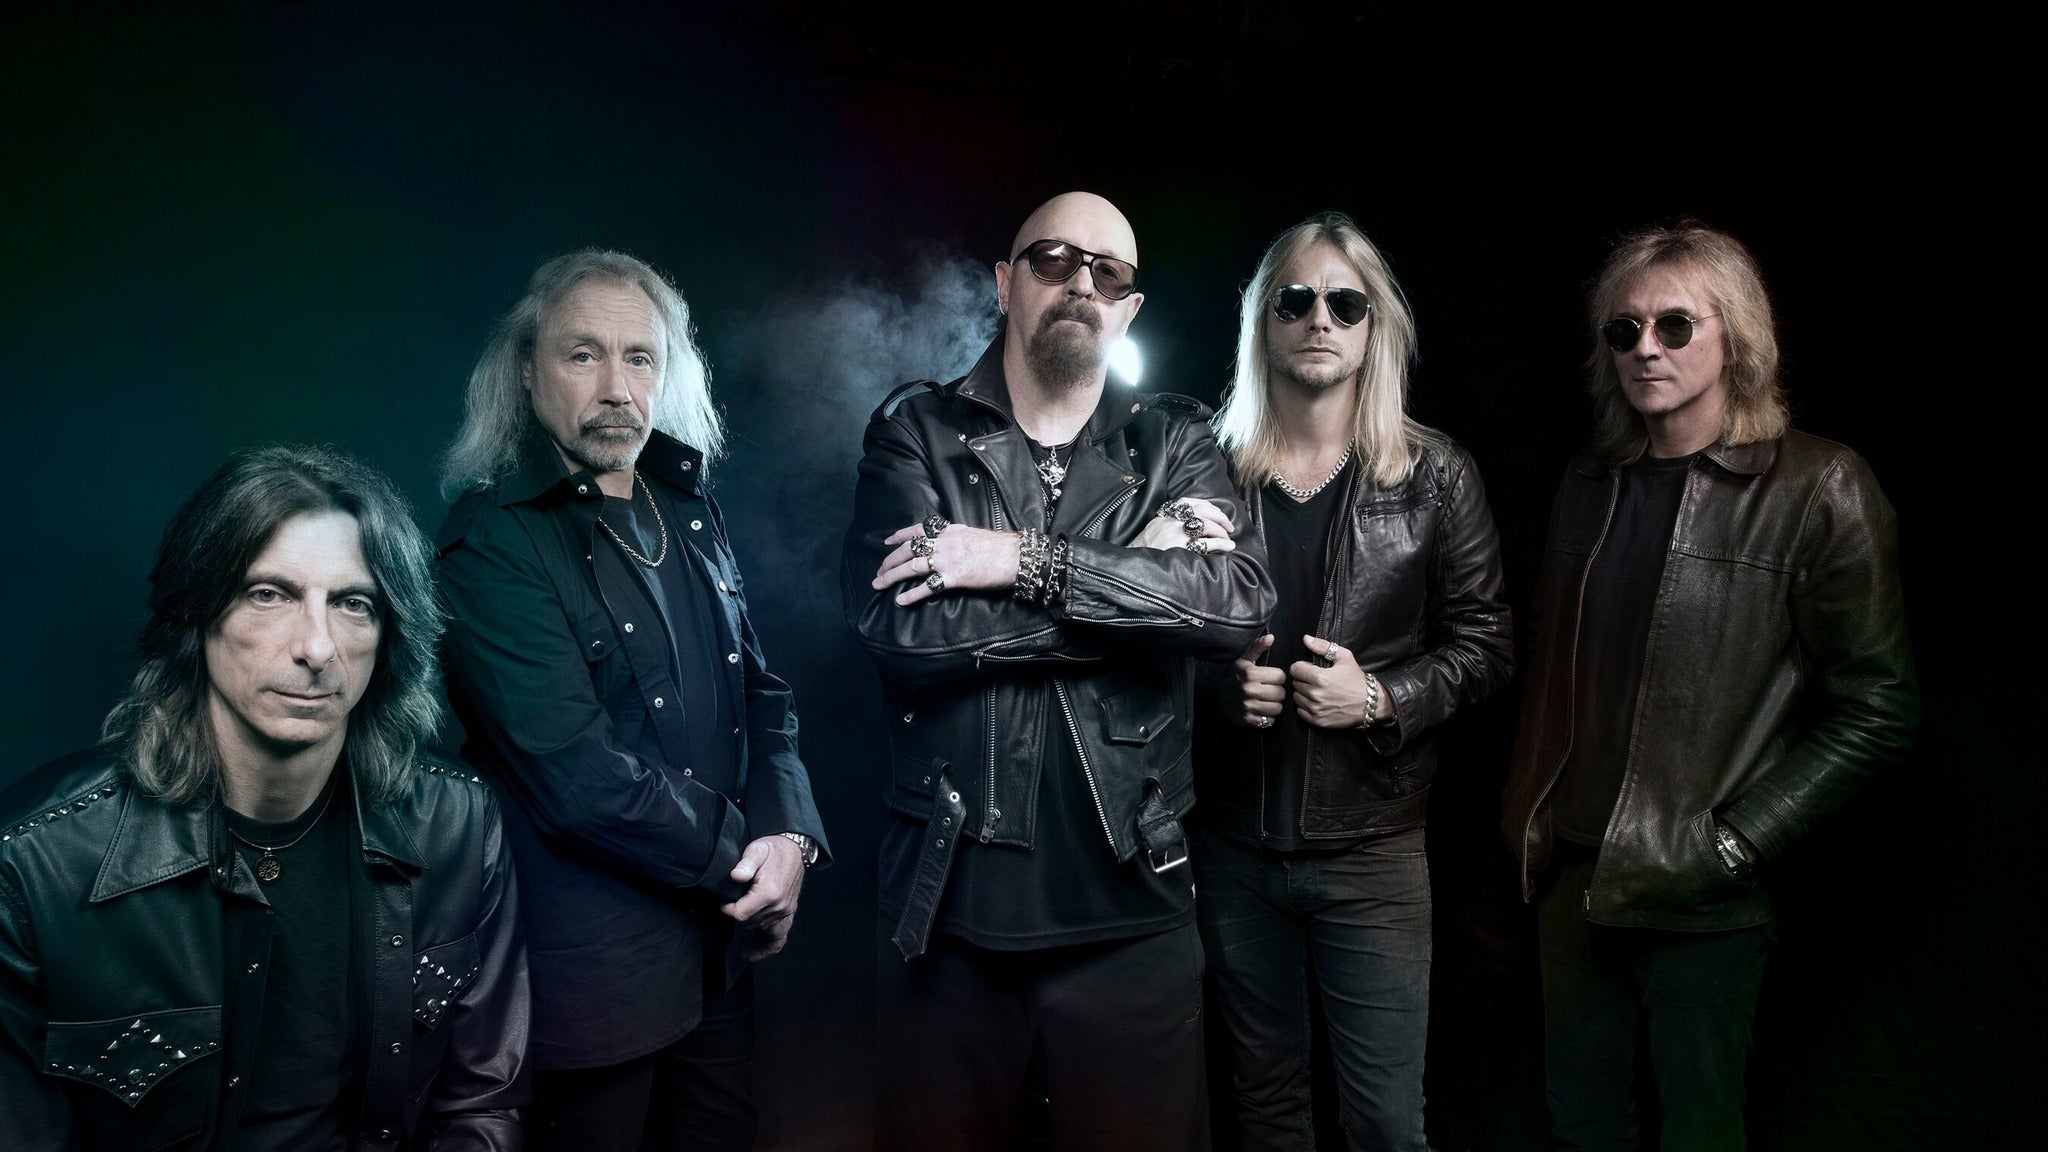 Judas Priest at The Grand Theater at Foxwoods Resort Casino